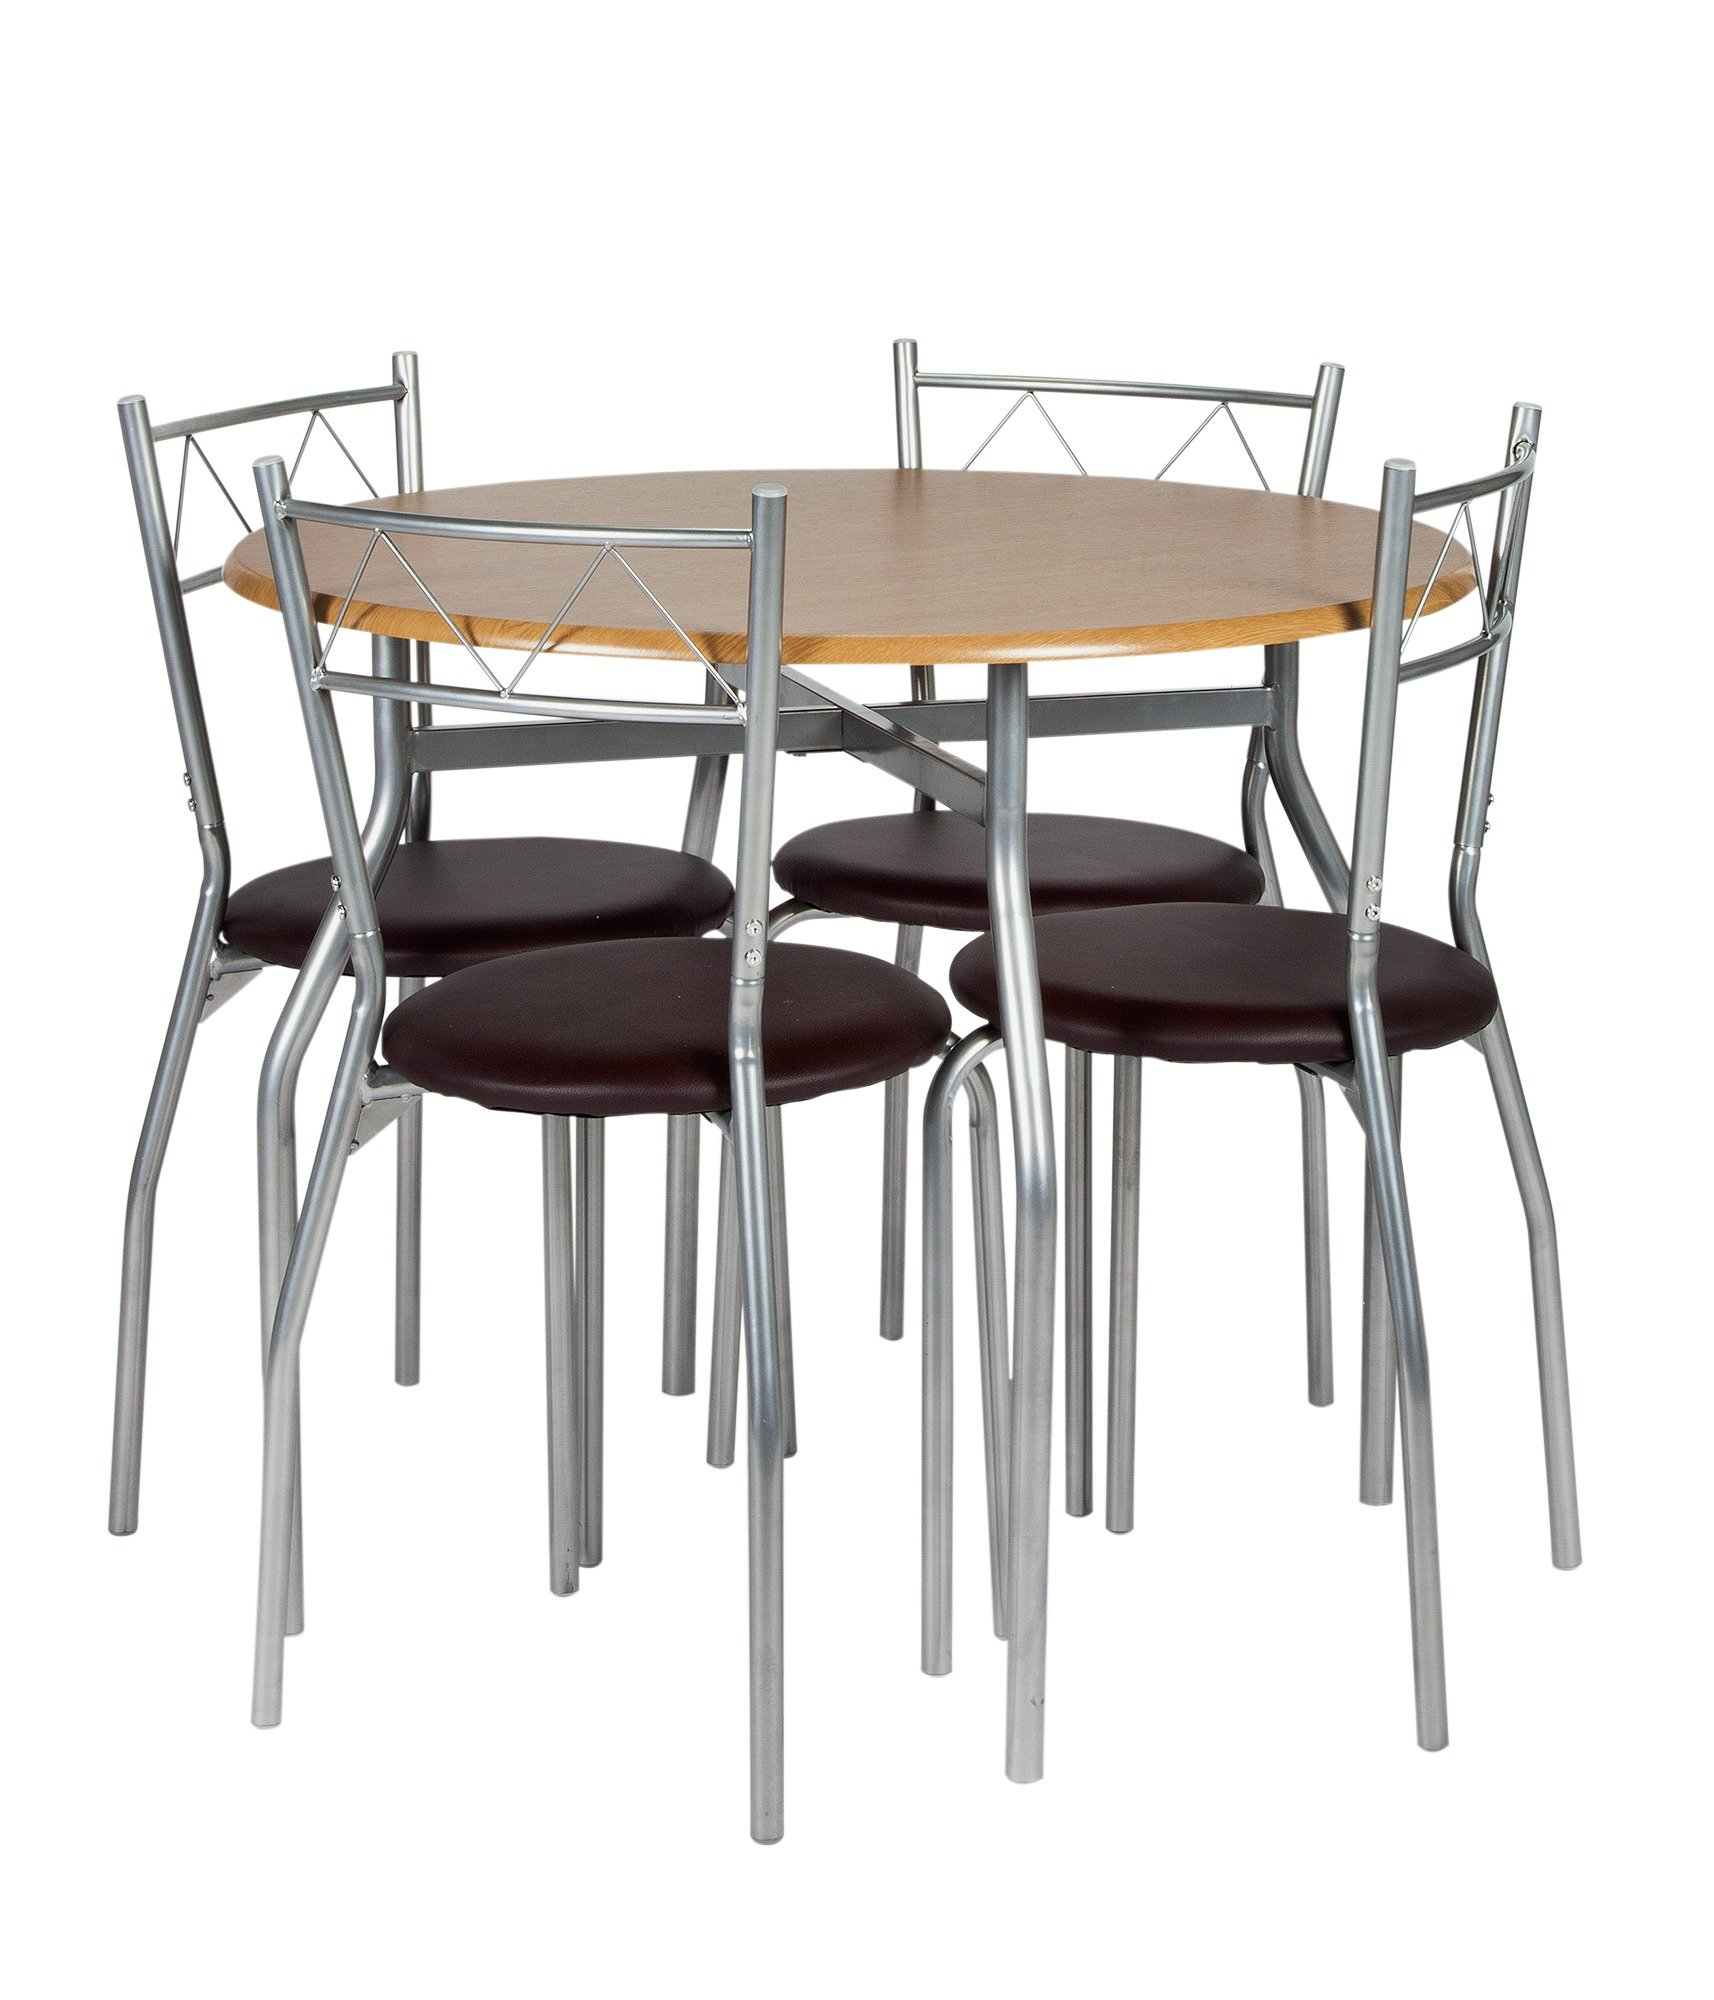 Argos Dining Table And Chairs White: Argos Home Oslo Round Wood Effect Dining Table & 4 Chairs